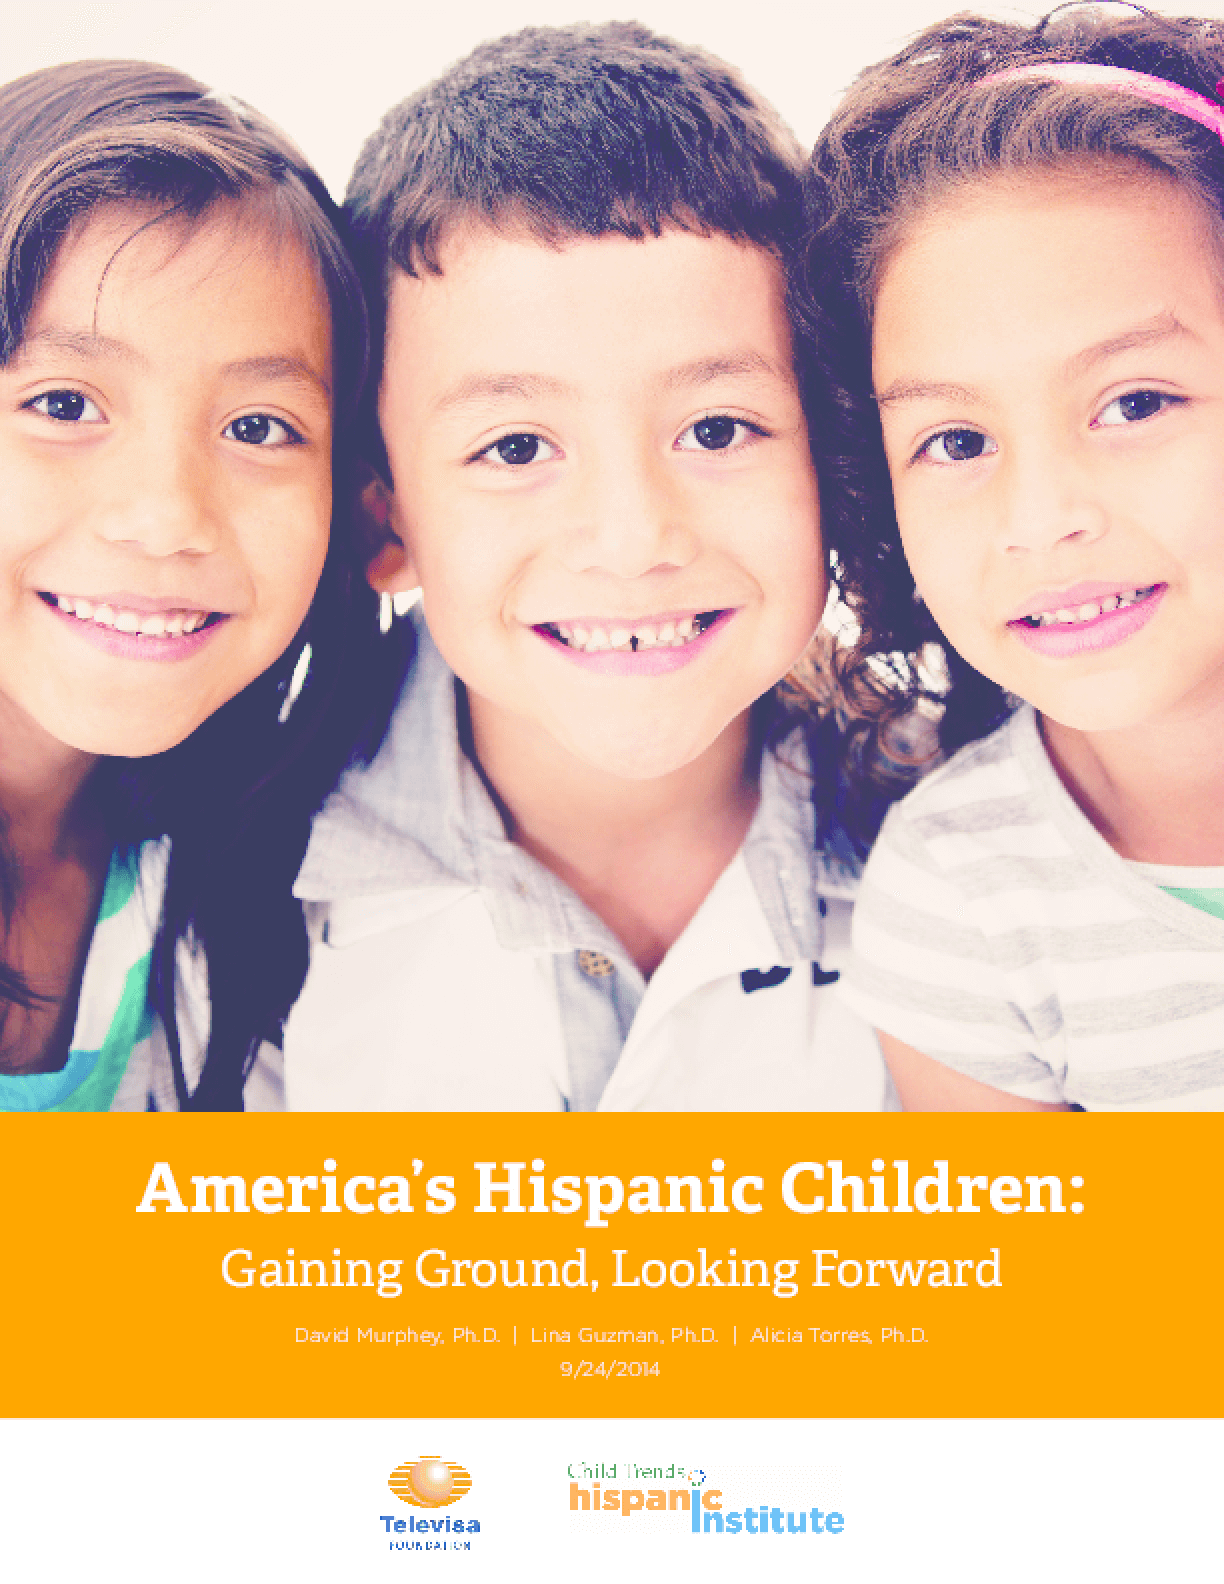 America's Hispanic Children: Gaining Ground, Looking Forward